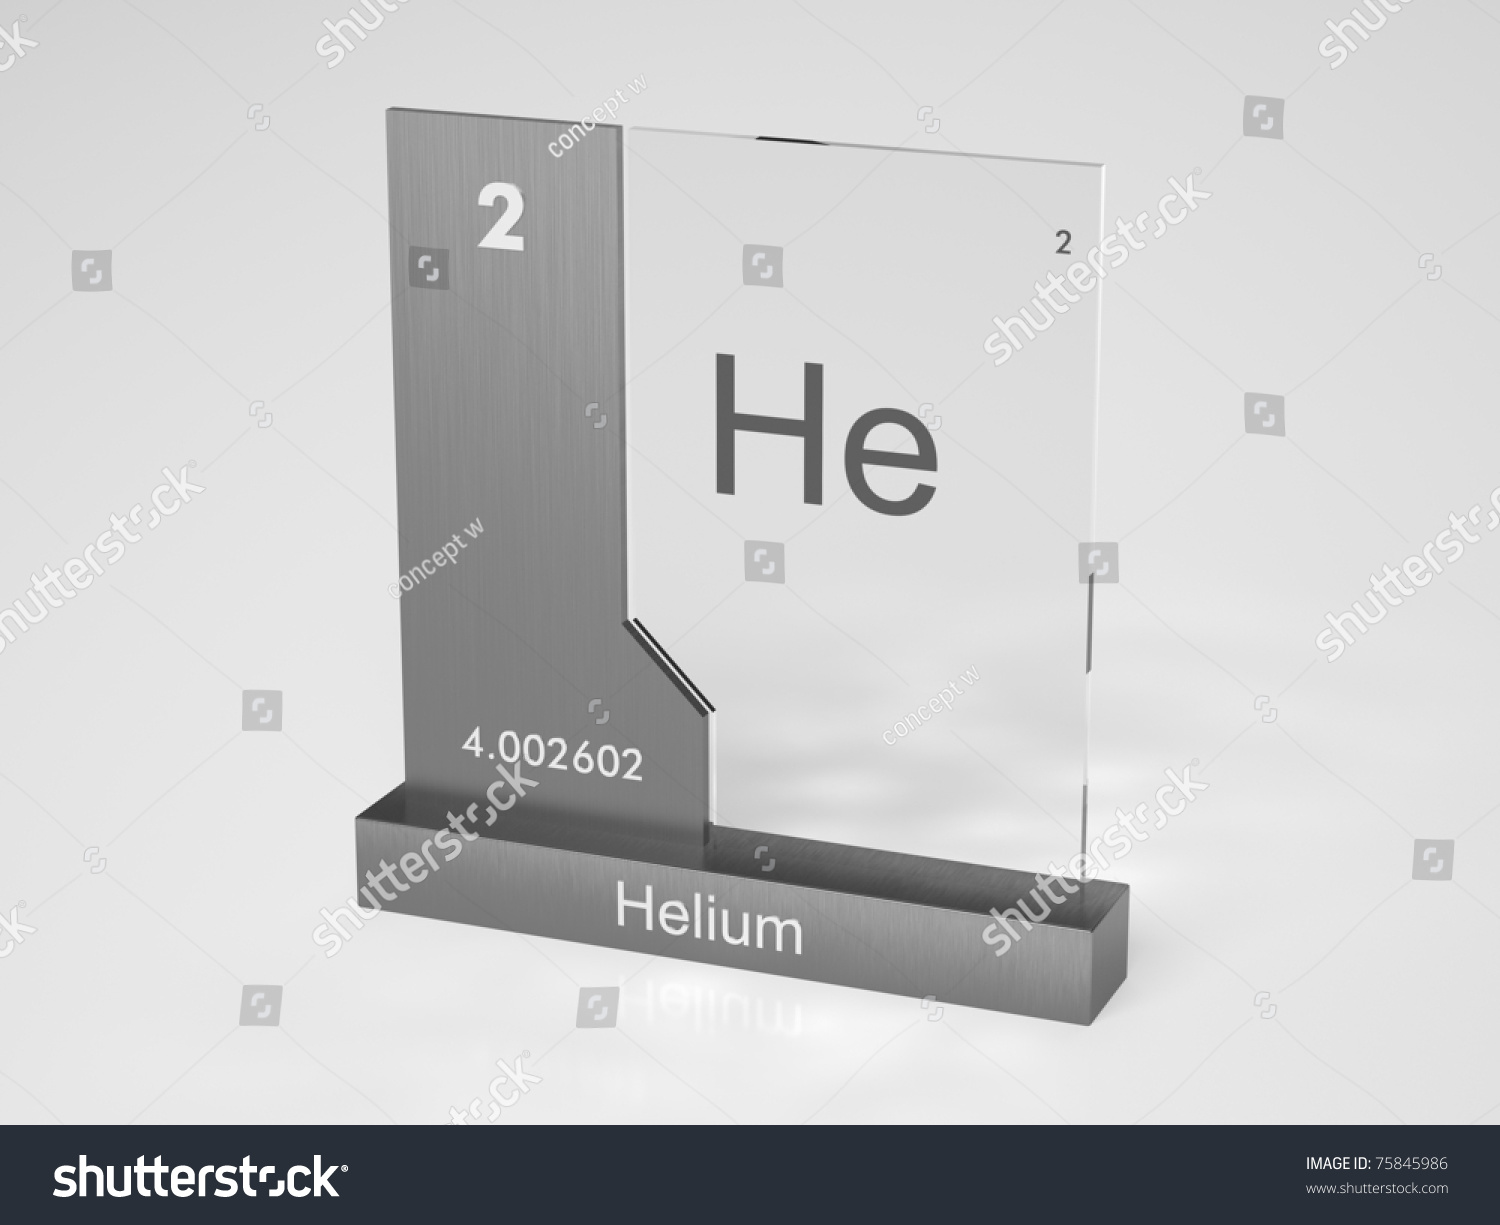 Helium symbol he chemical element periodic stock illustration helium symbol he chemical element of the periodic table buycottarizona